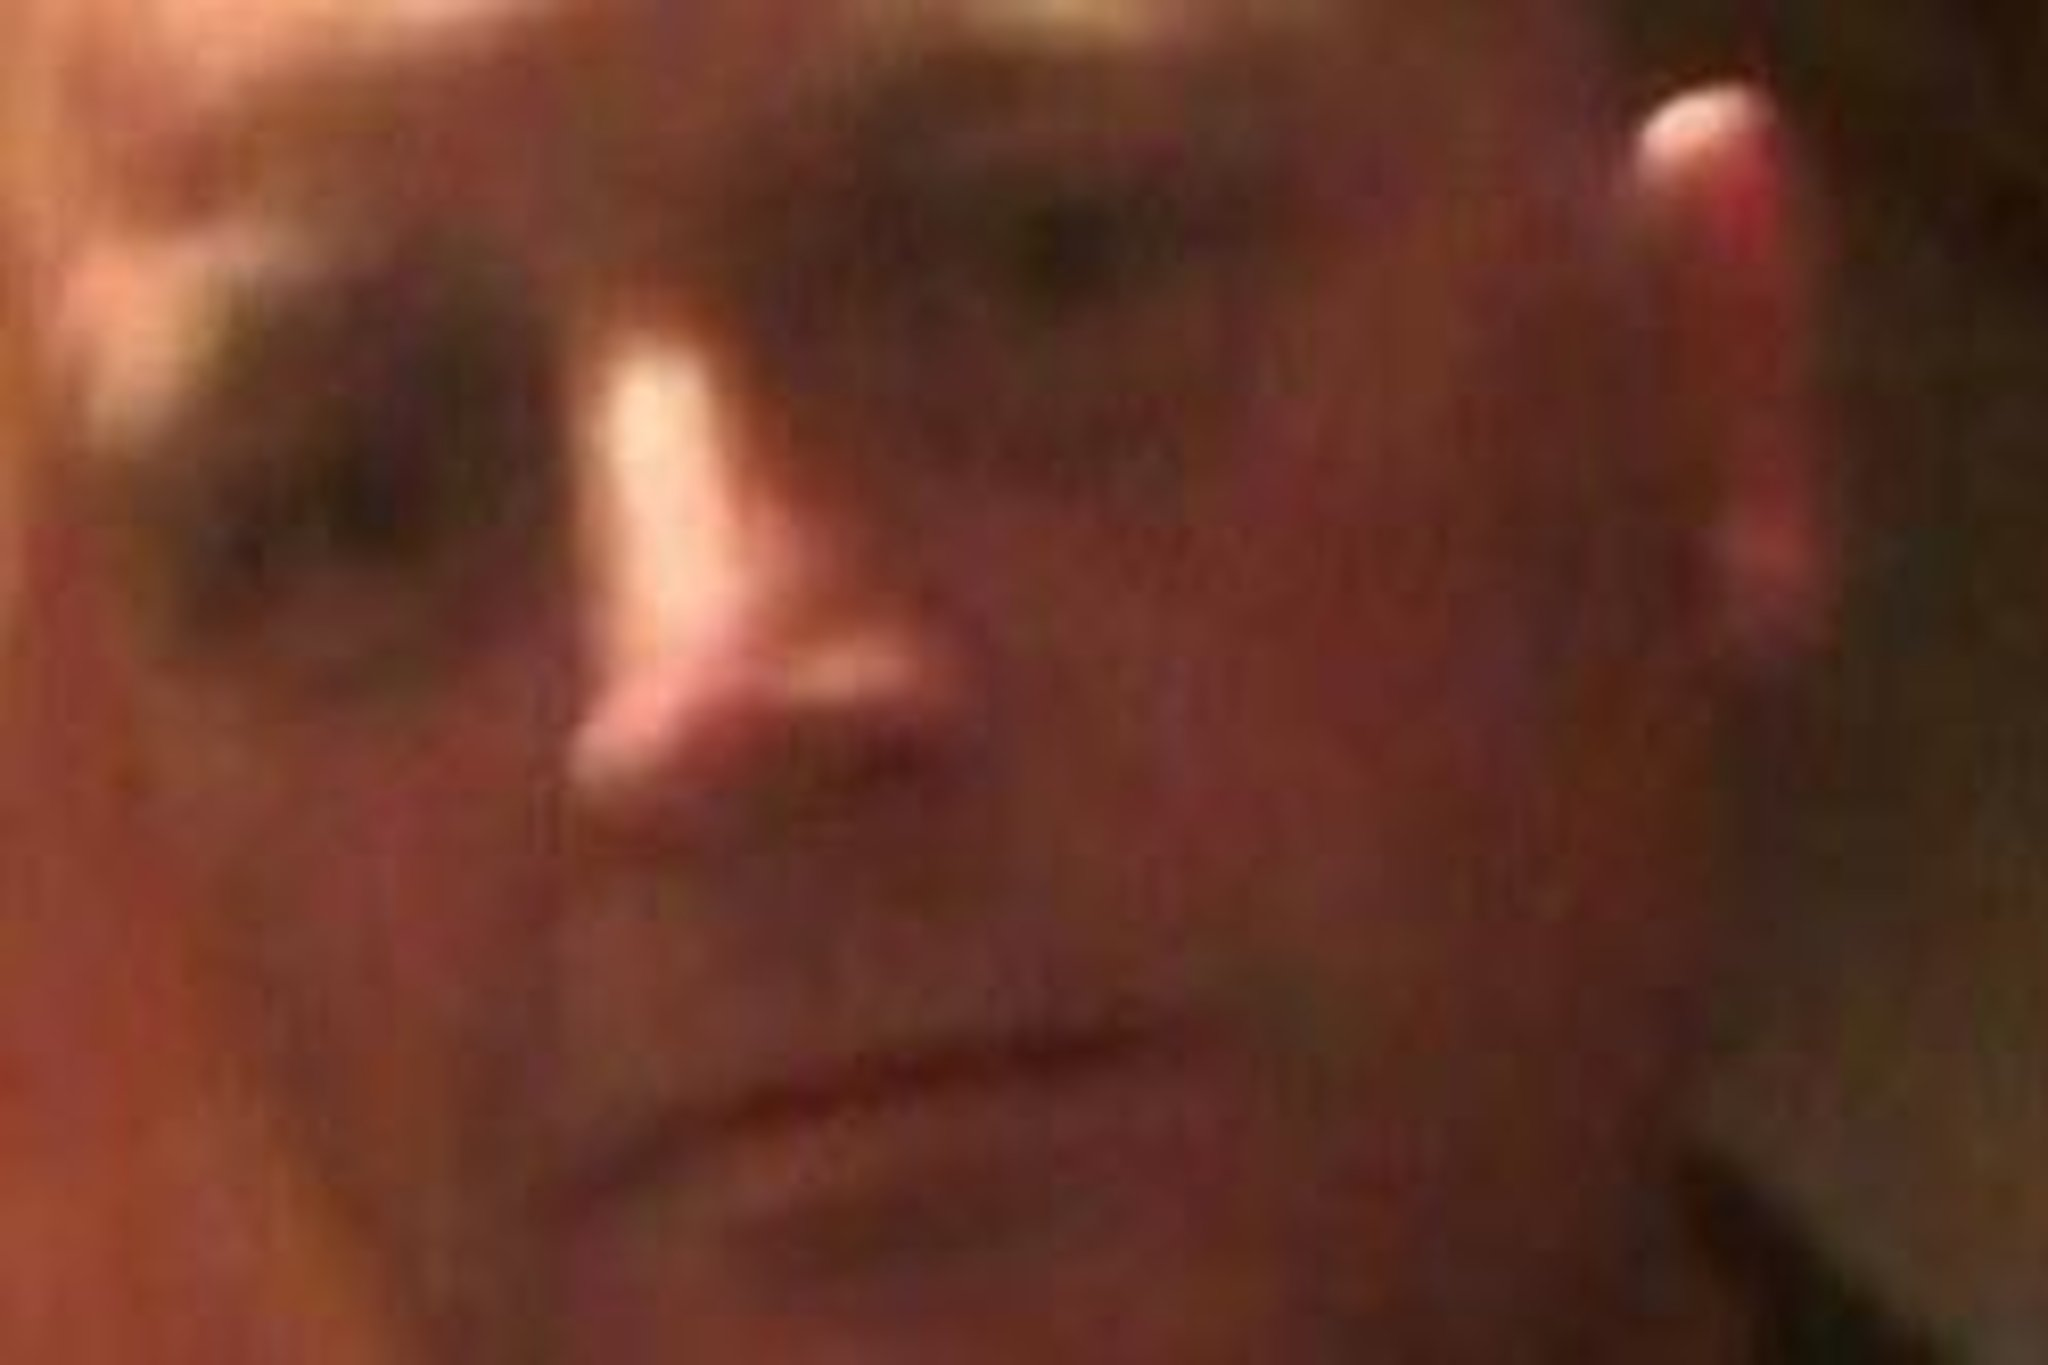 Police searching for missing Forth Valley man